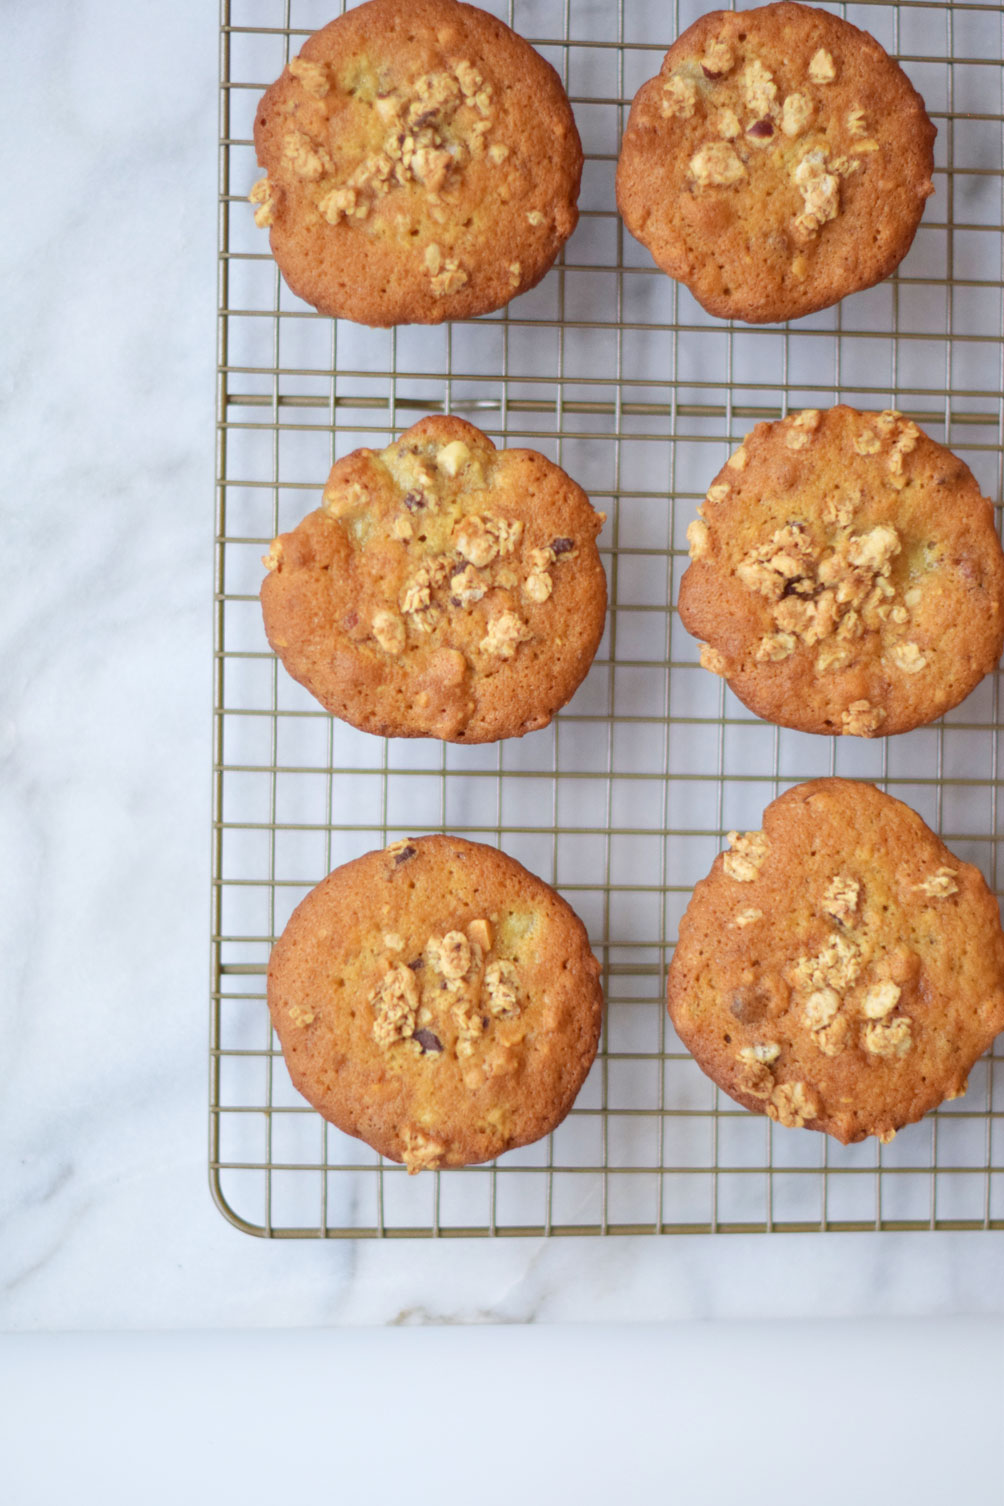 a healthy and delicious breakfast recipe for banana nut crunch muffins from Leslie Musser of one brass fox